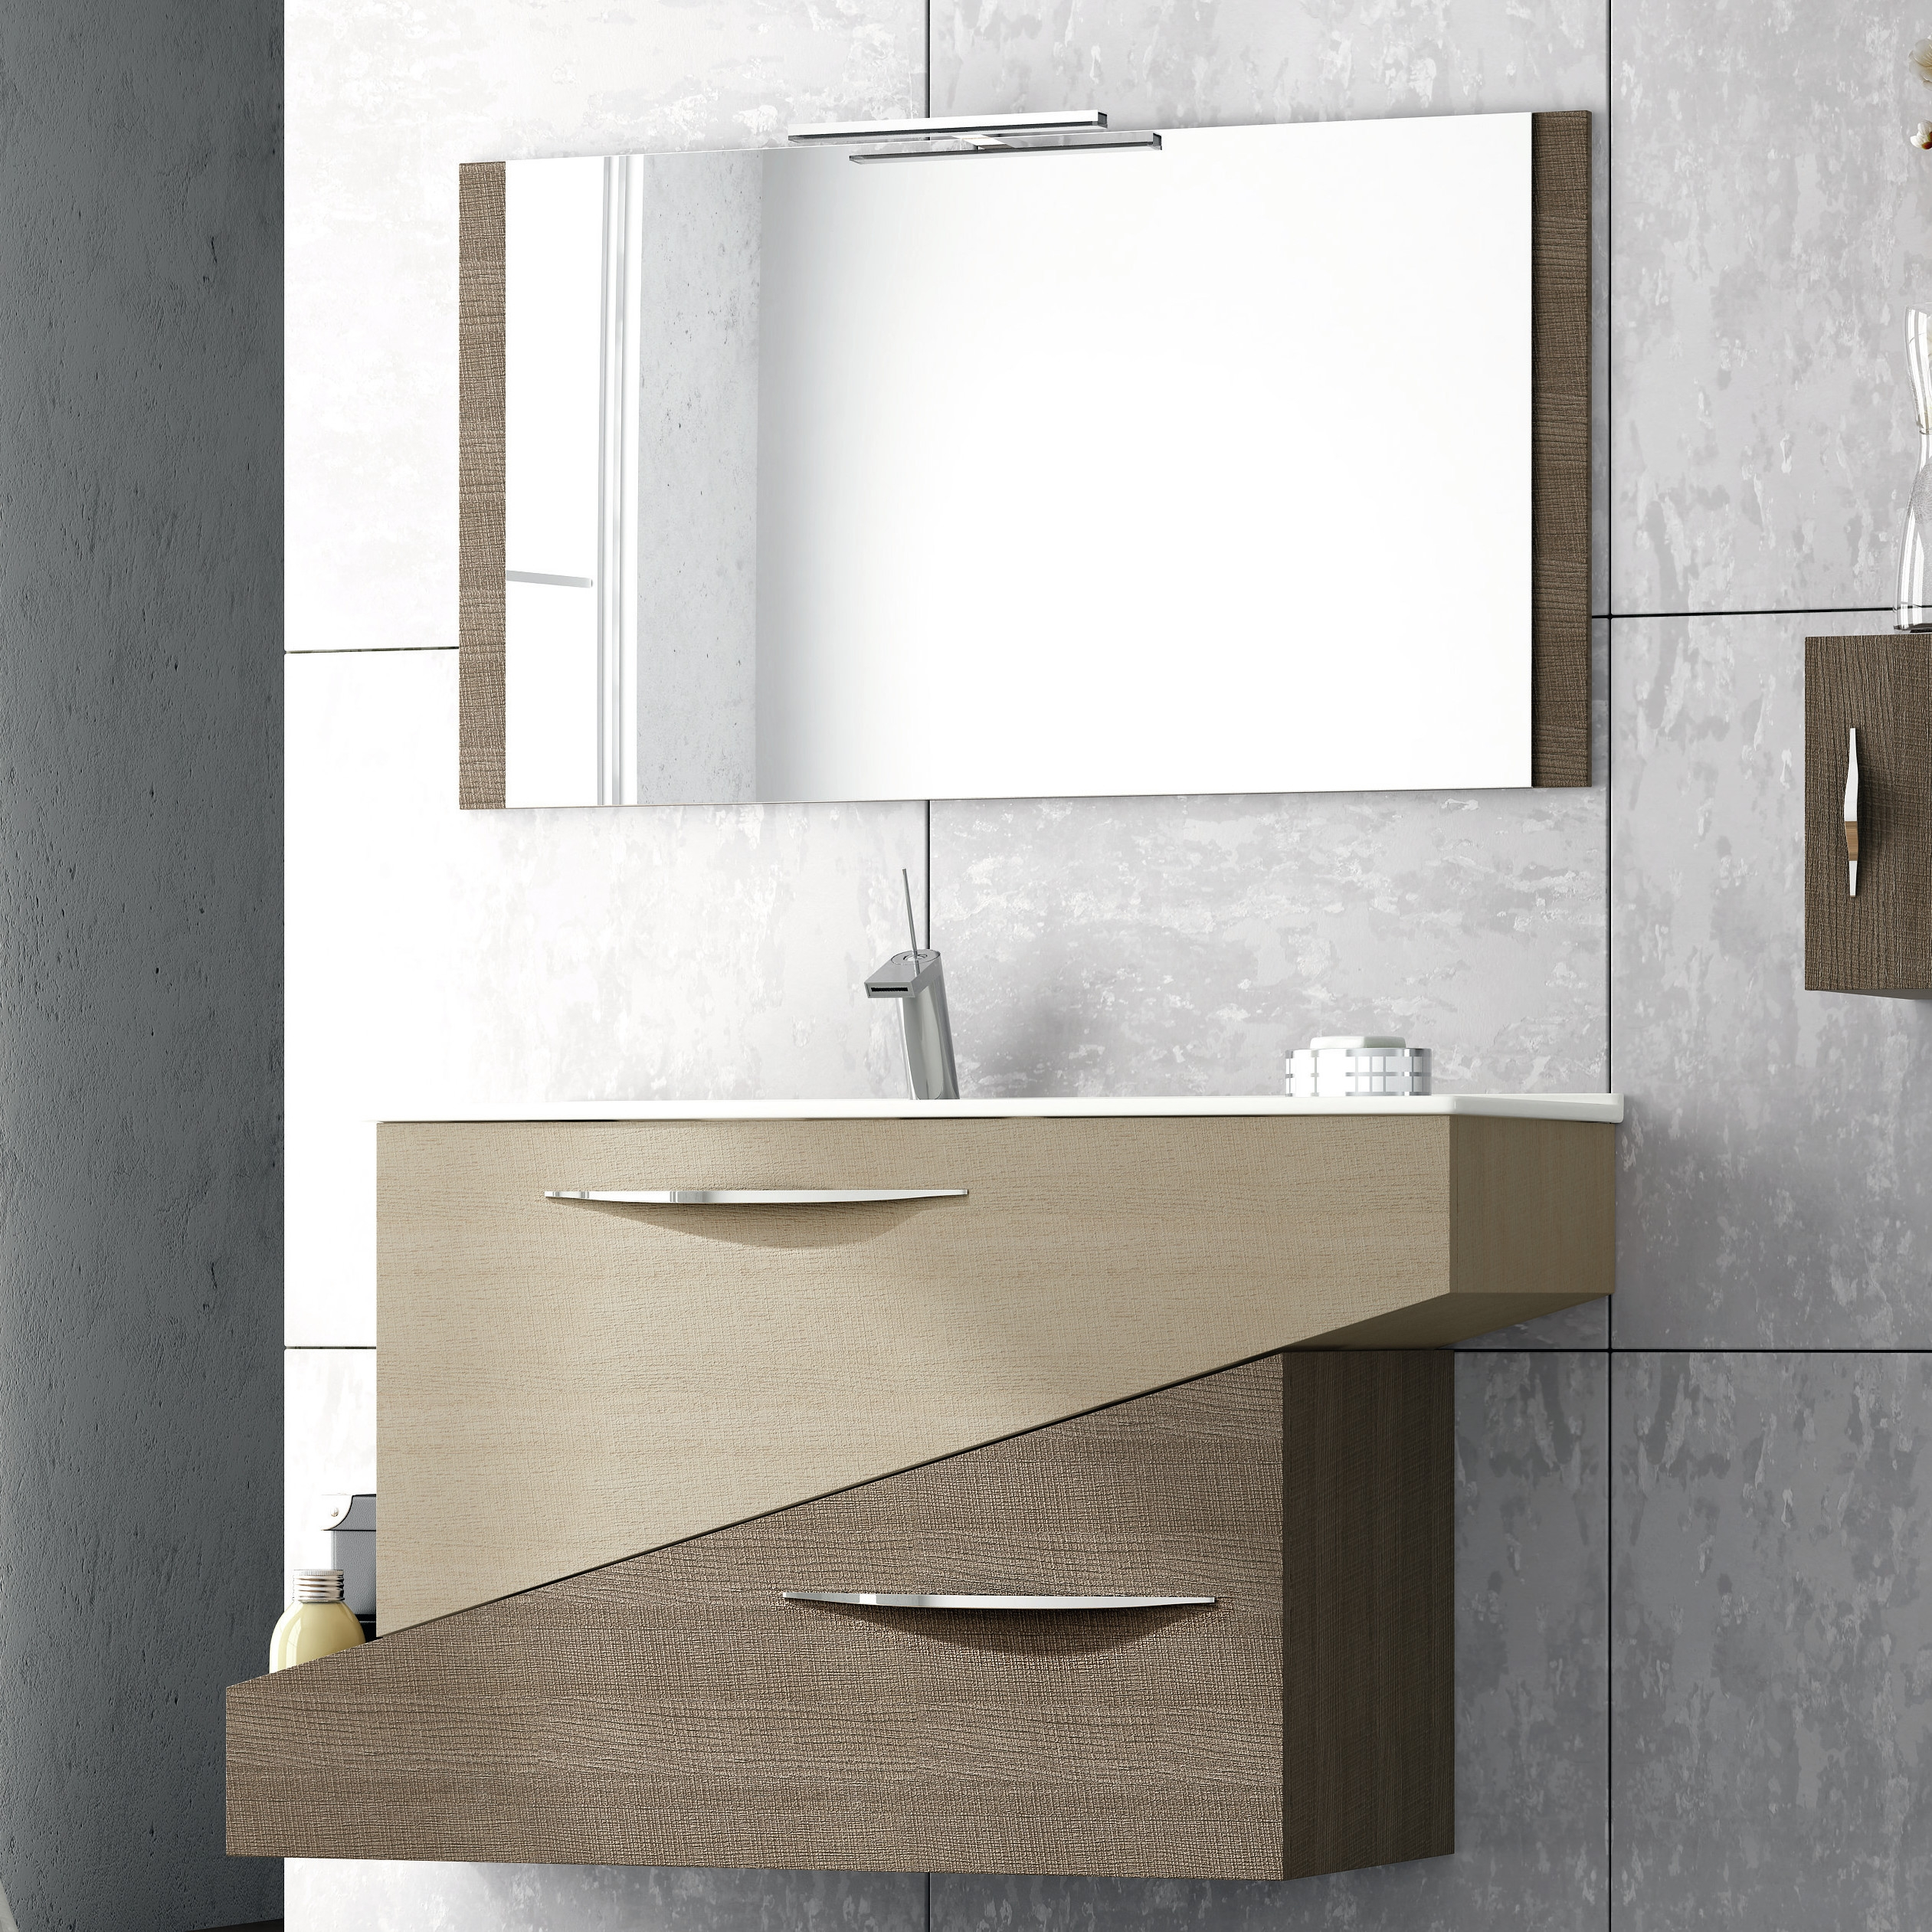 38 Inch Wide Bathroom Vanity2522 X 2522